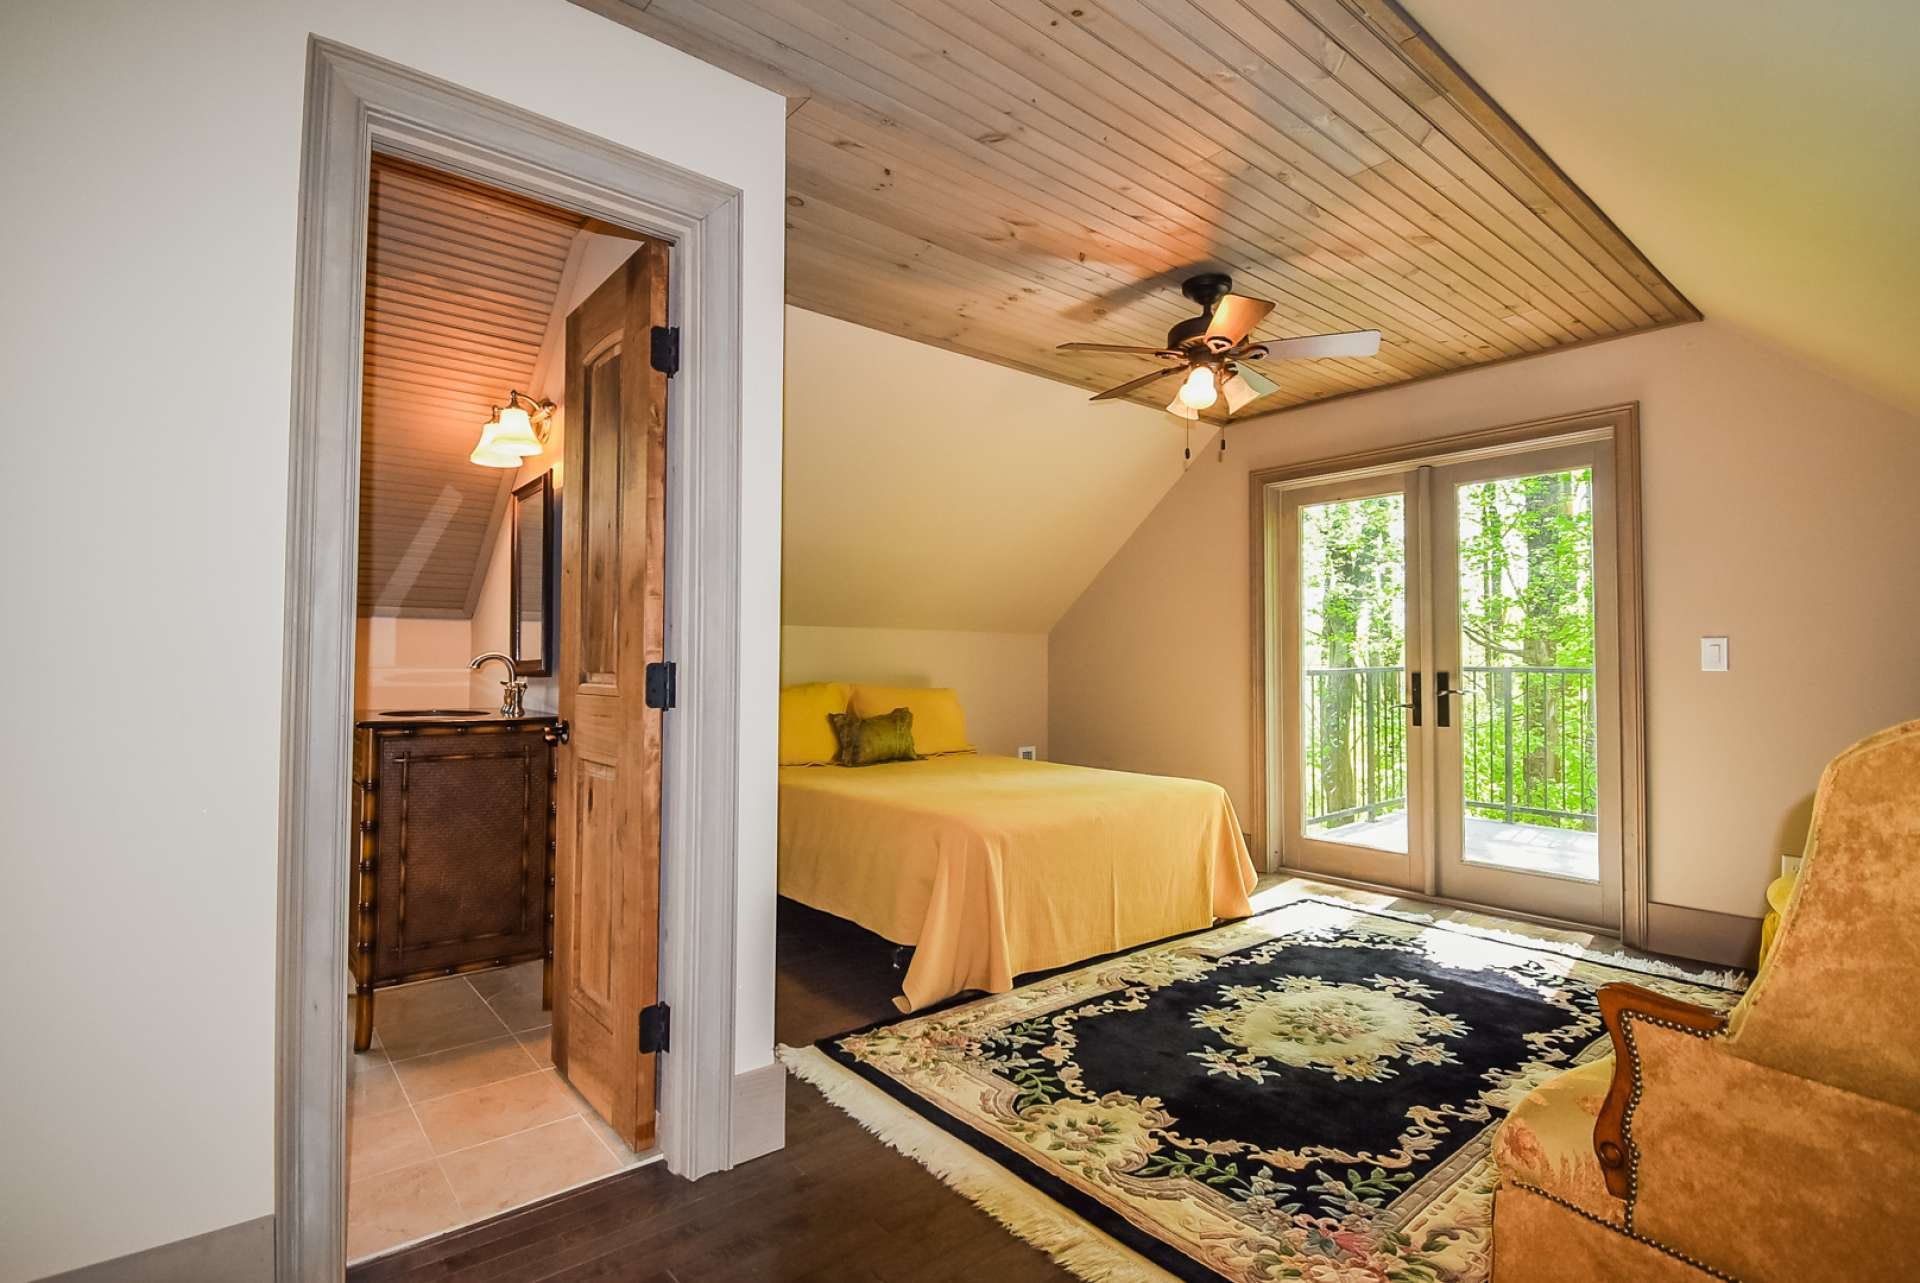 The apartment bedroom features access to a private deck. Your guests will enjoy their privacy.